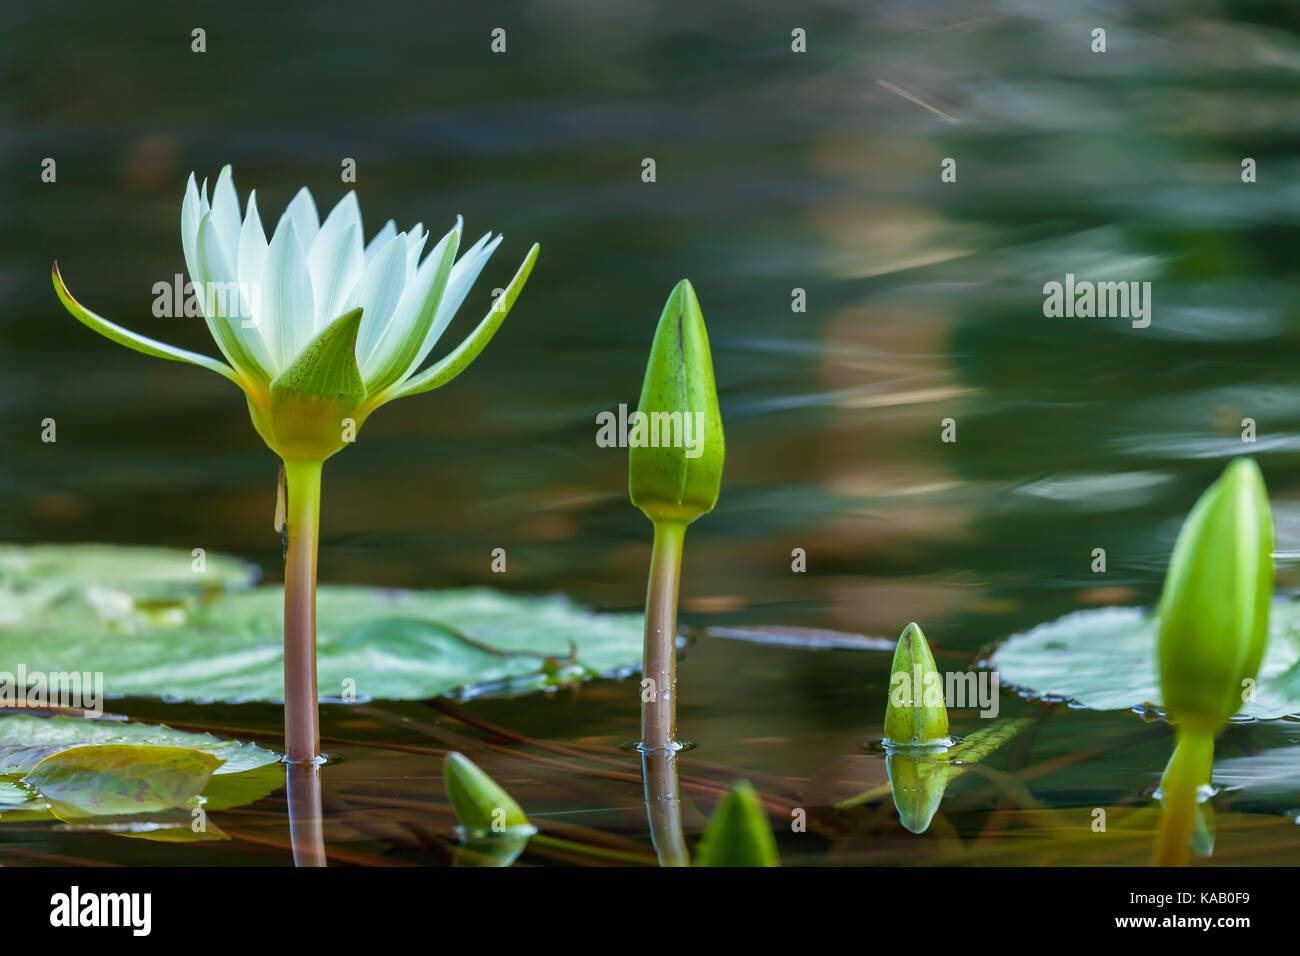 A close up of a water lily flower (Nymphaea sp.) in a water garden in New York City Central Park, New York. - Stock Image